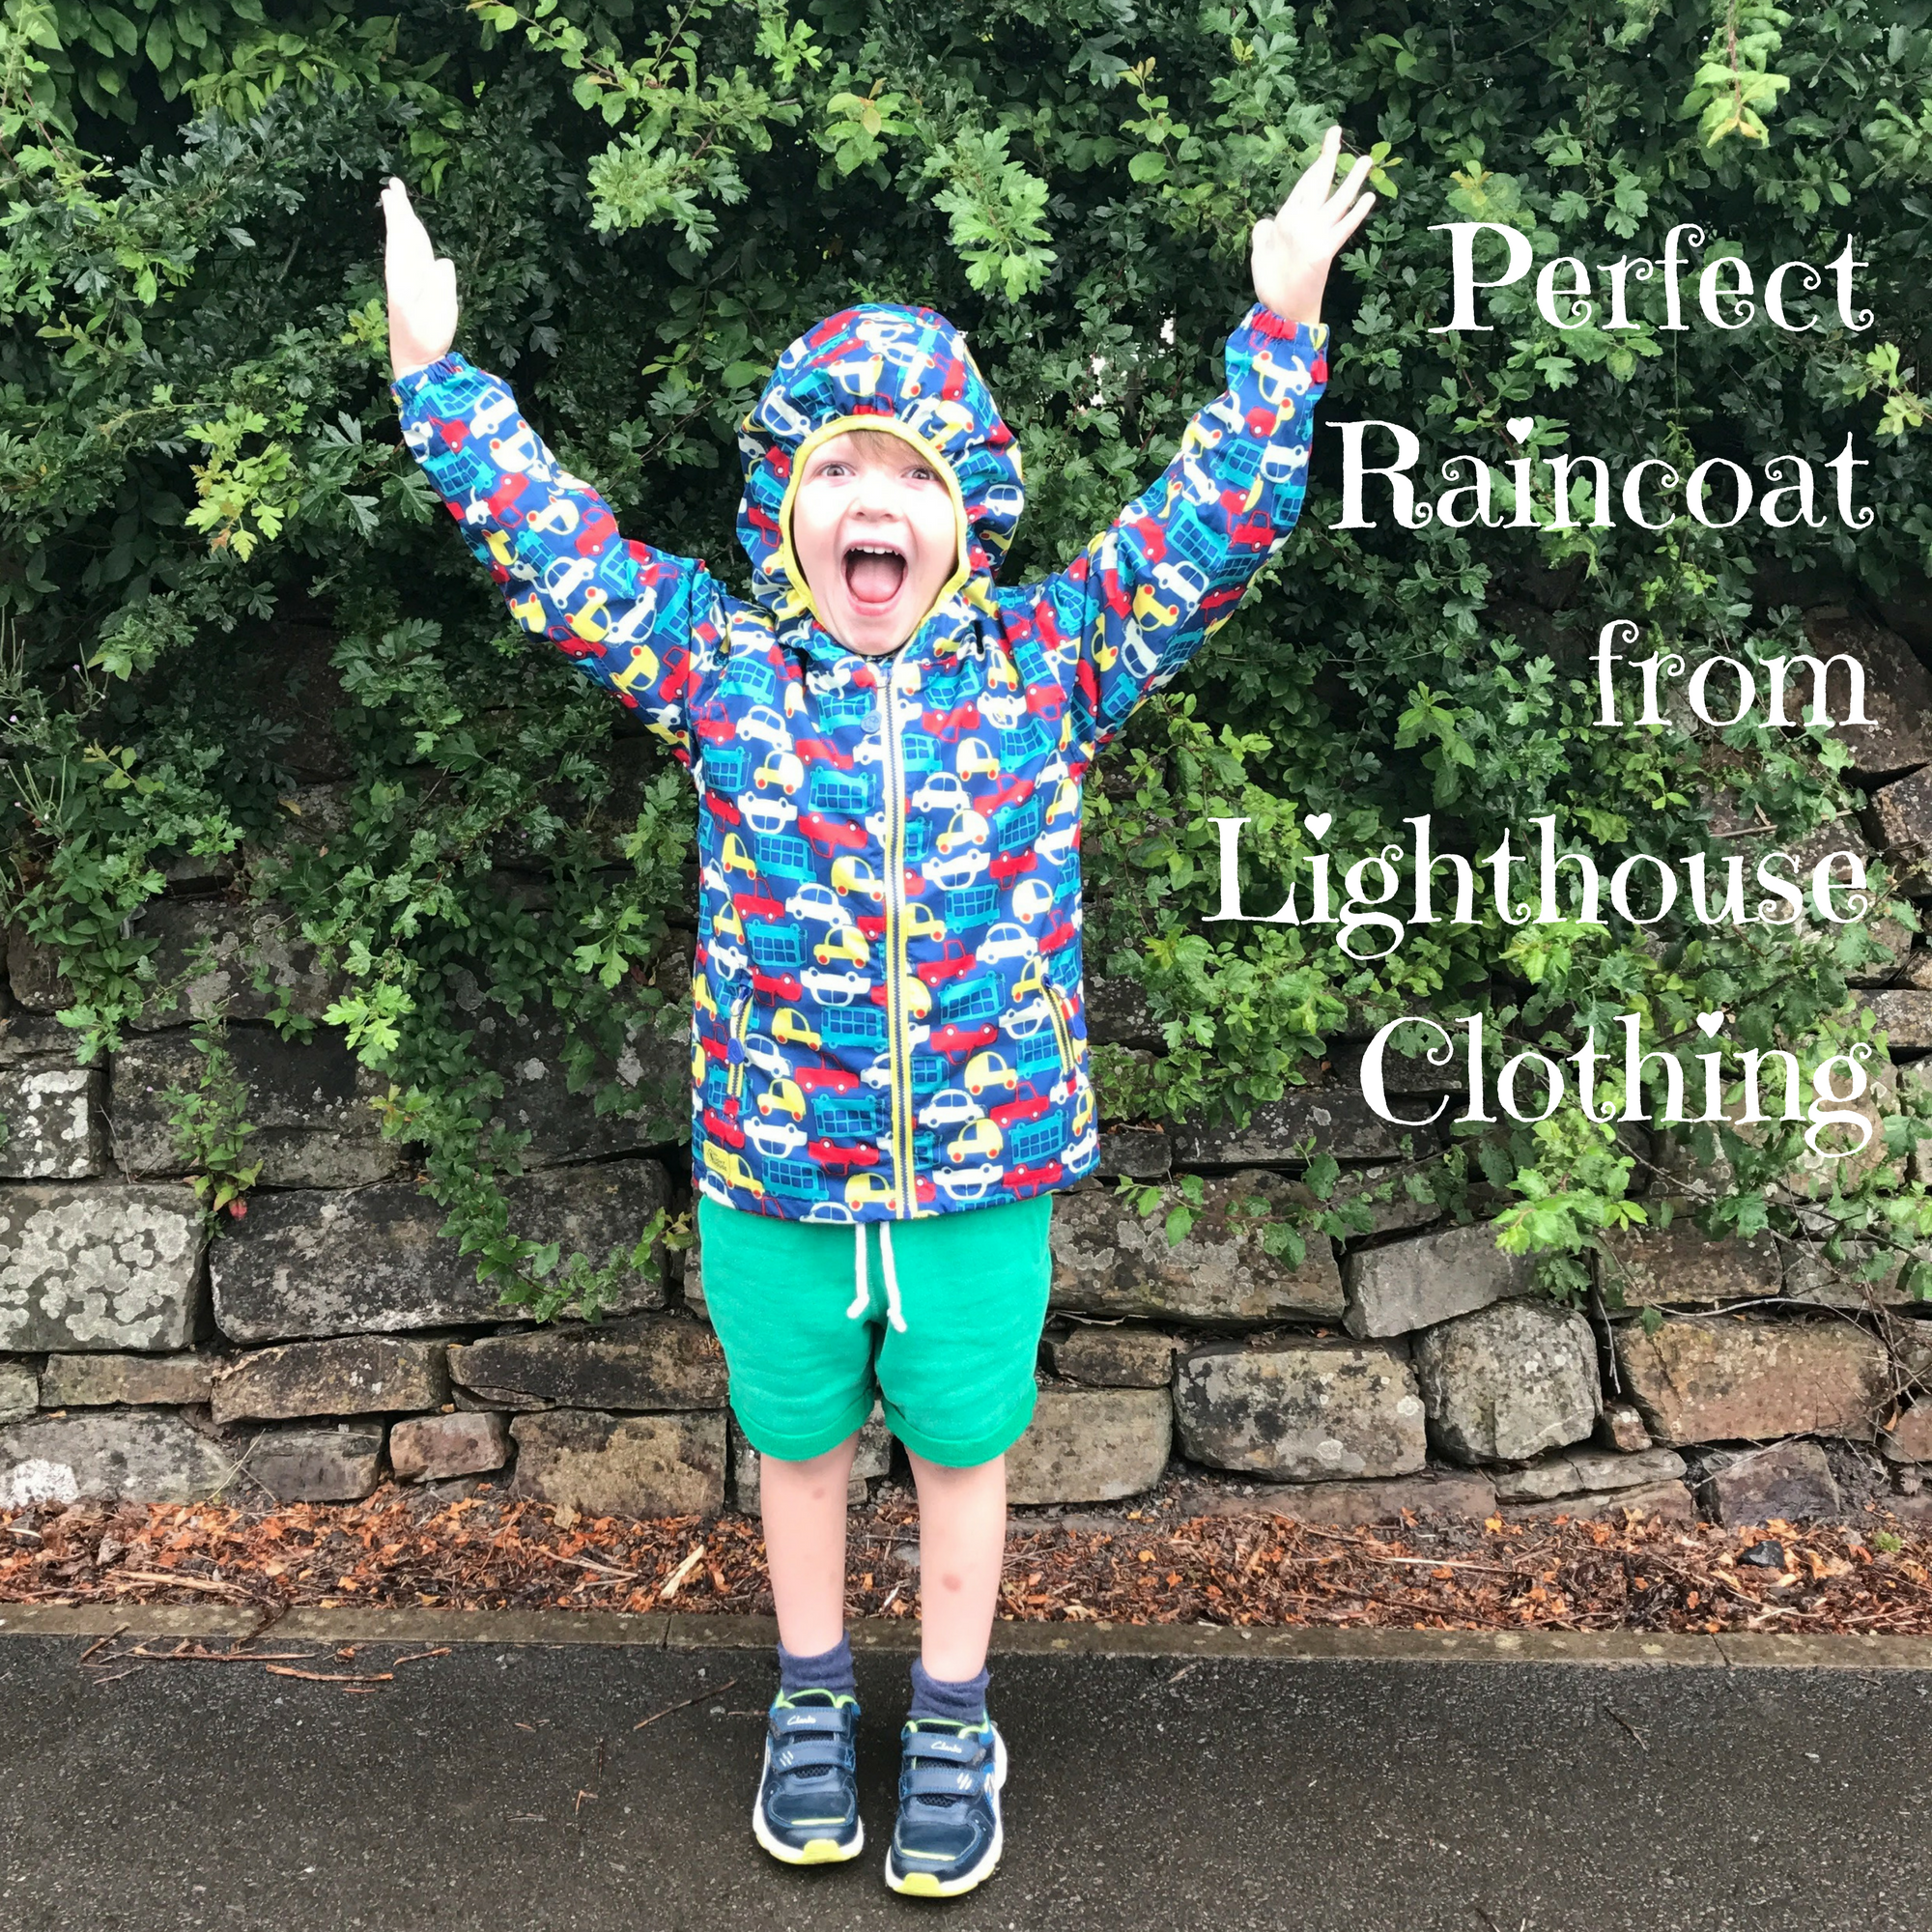 Perfect Raincoat from Lighthouse Clothing